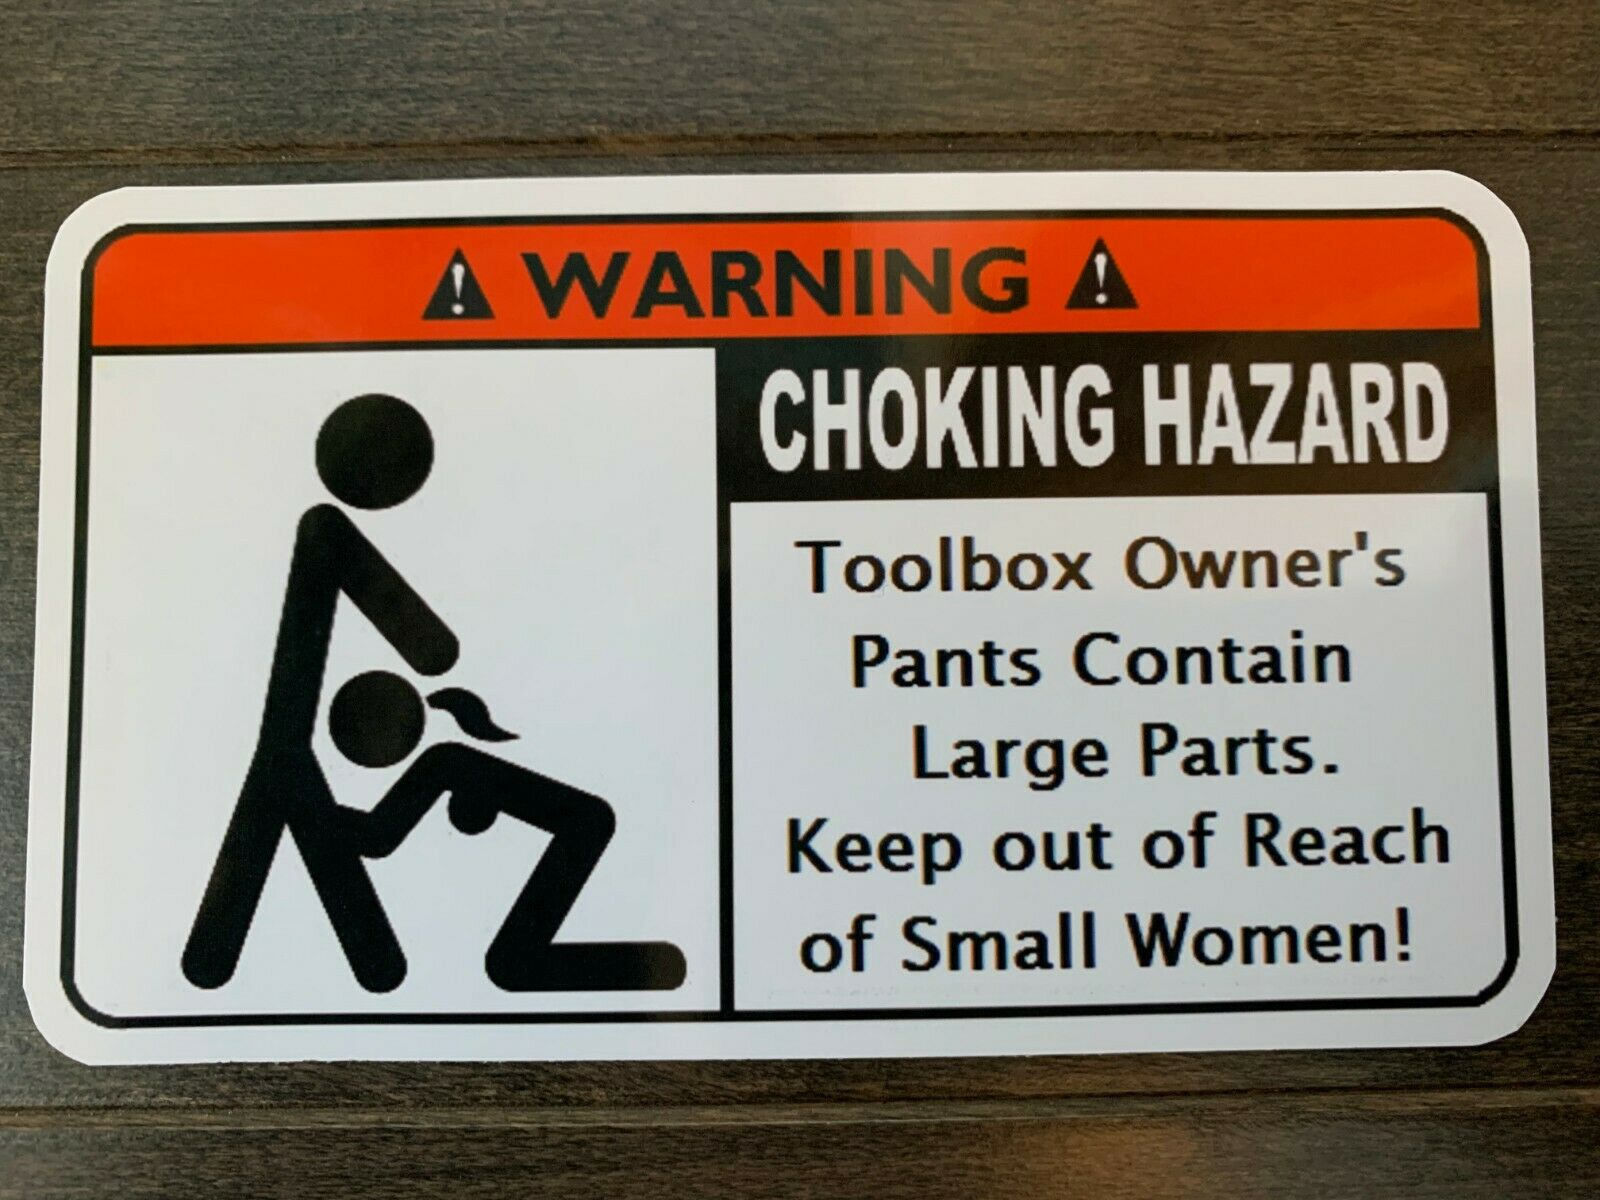 Choking Hazard Tool Box Warning Sticker - Gold - Must Have!! mac snapon dewalt